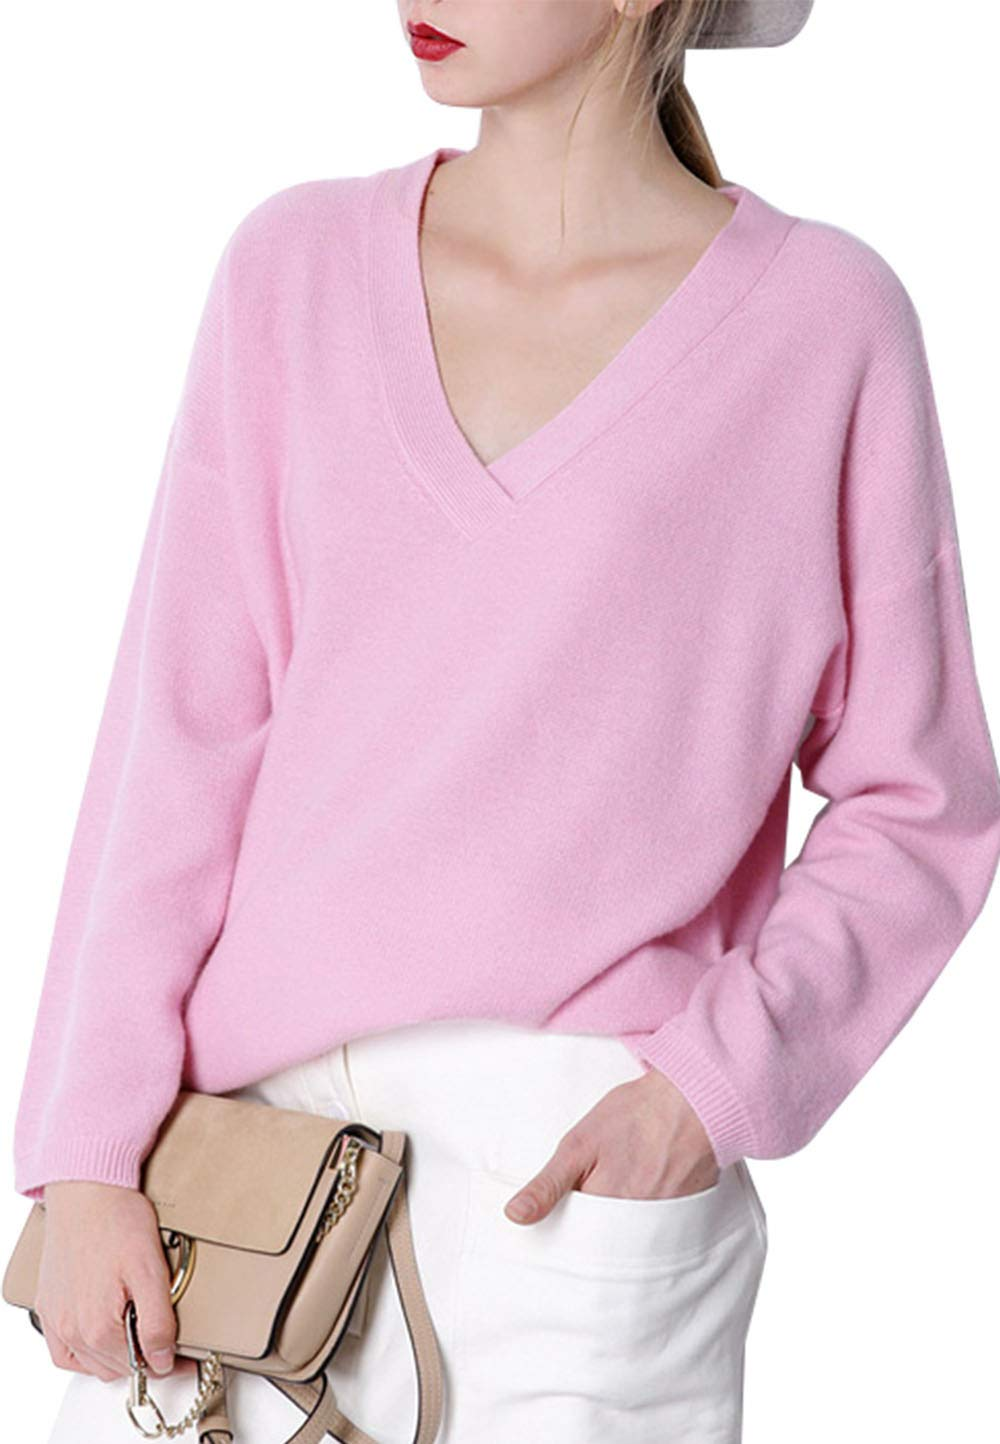 Womens Loose Fit Cashmere Soft Thermal V Neck Long Sleeve Solid Cosy Basic Sweater Tops Blouse Pink US 12